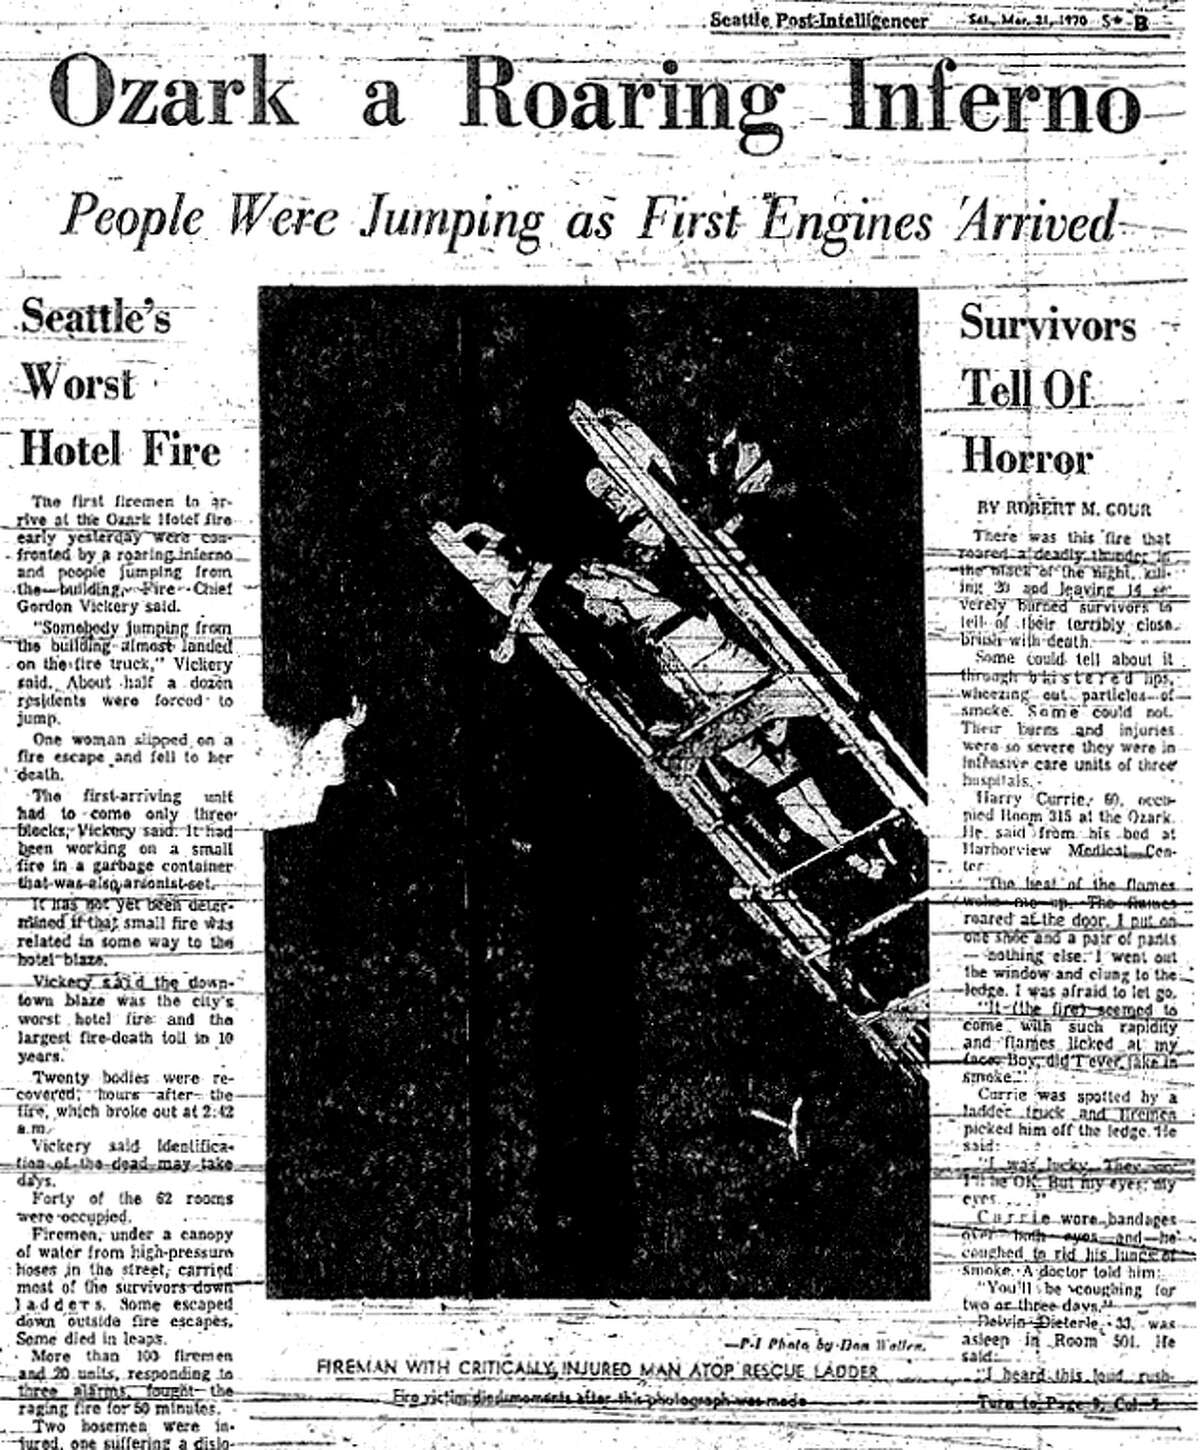 More coverage of the March 1970 Ozark Hotel fire that killed 21 people. At least one woman died after falling from a fire escape.